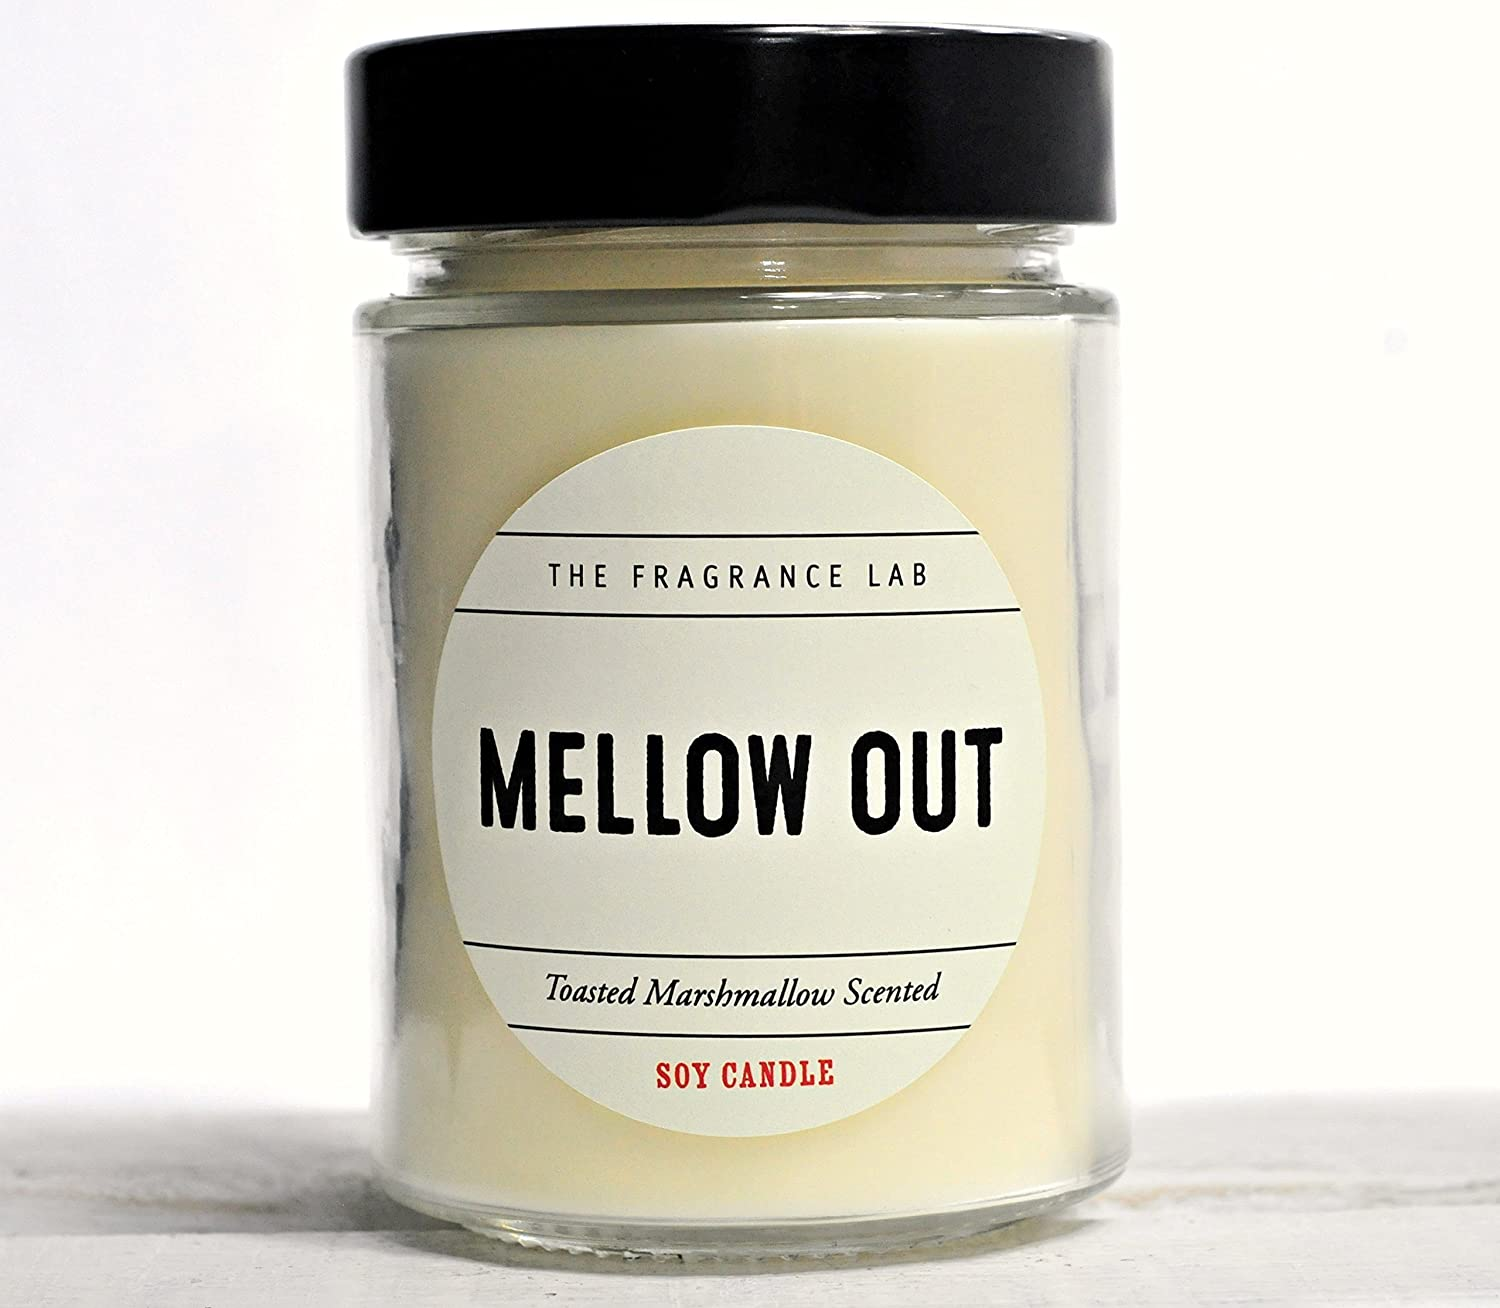 Luxury Soy Candles -Mellow Out Toasted Marshmallow Scented | The Fragrance Lab